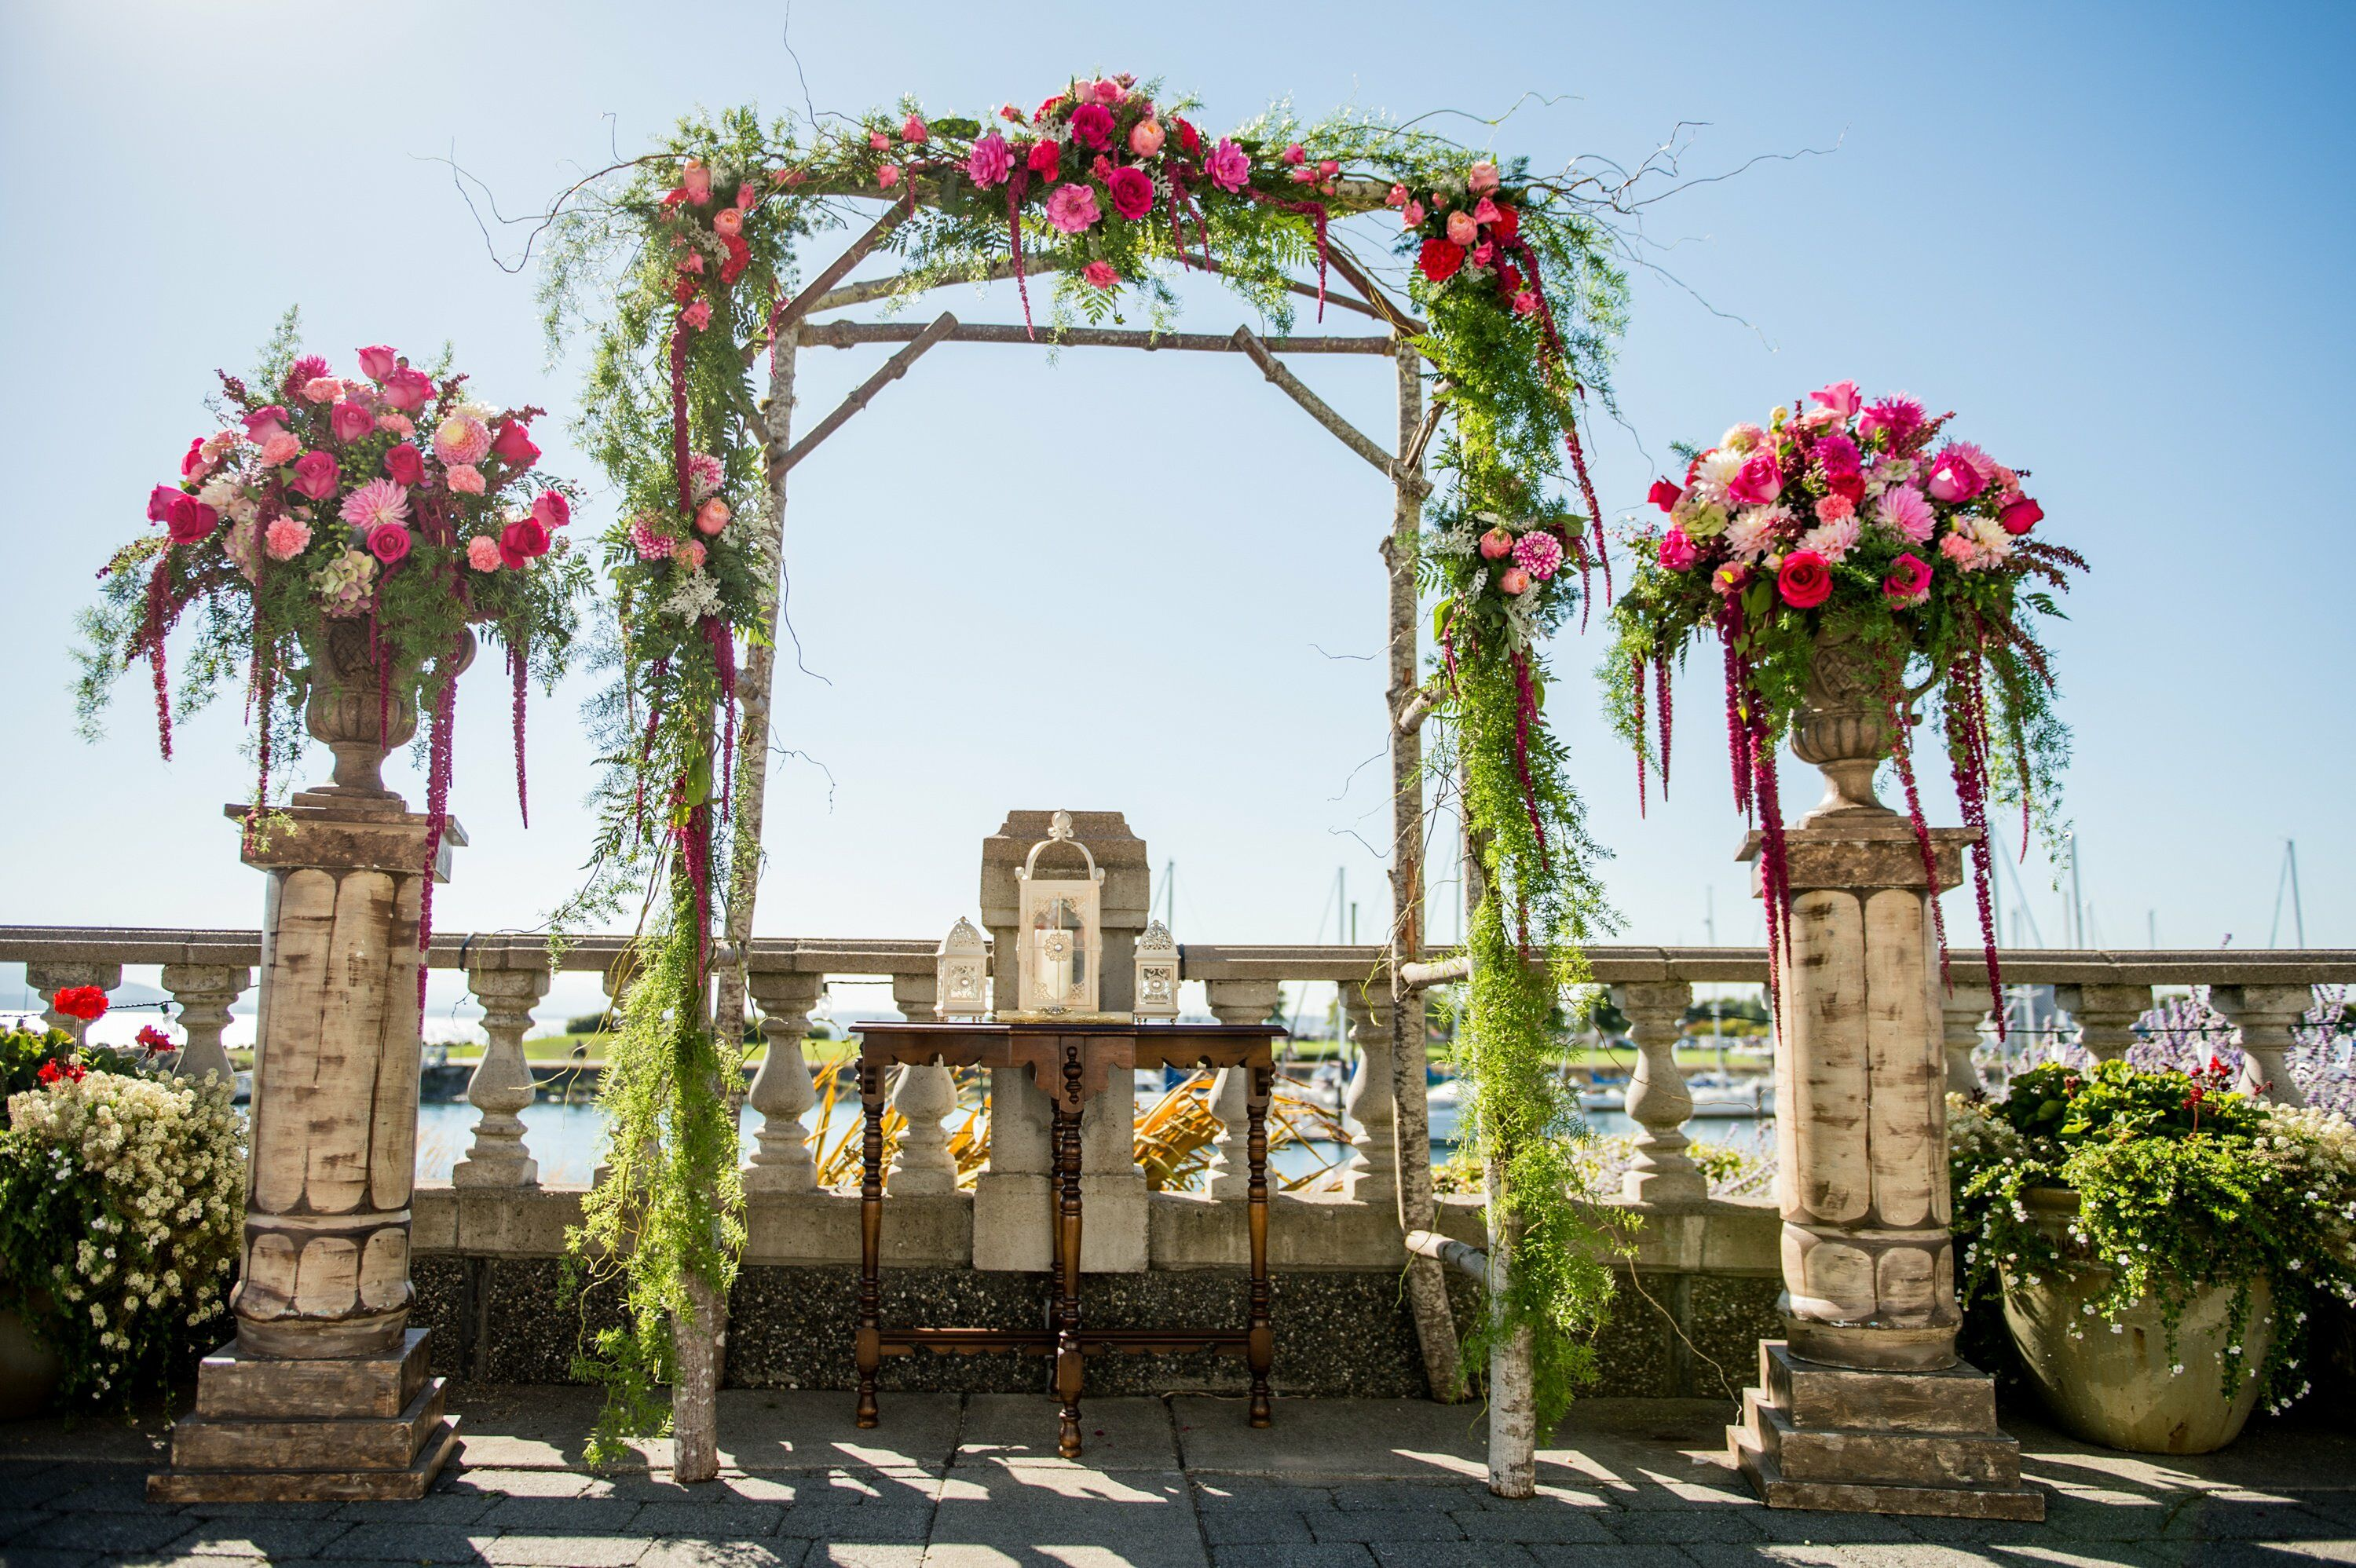 Wedding Ceremony Ideas Flower Covered Wedding Arch: Outdoor Ceremony Arch With Flowers And Ferns